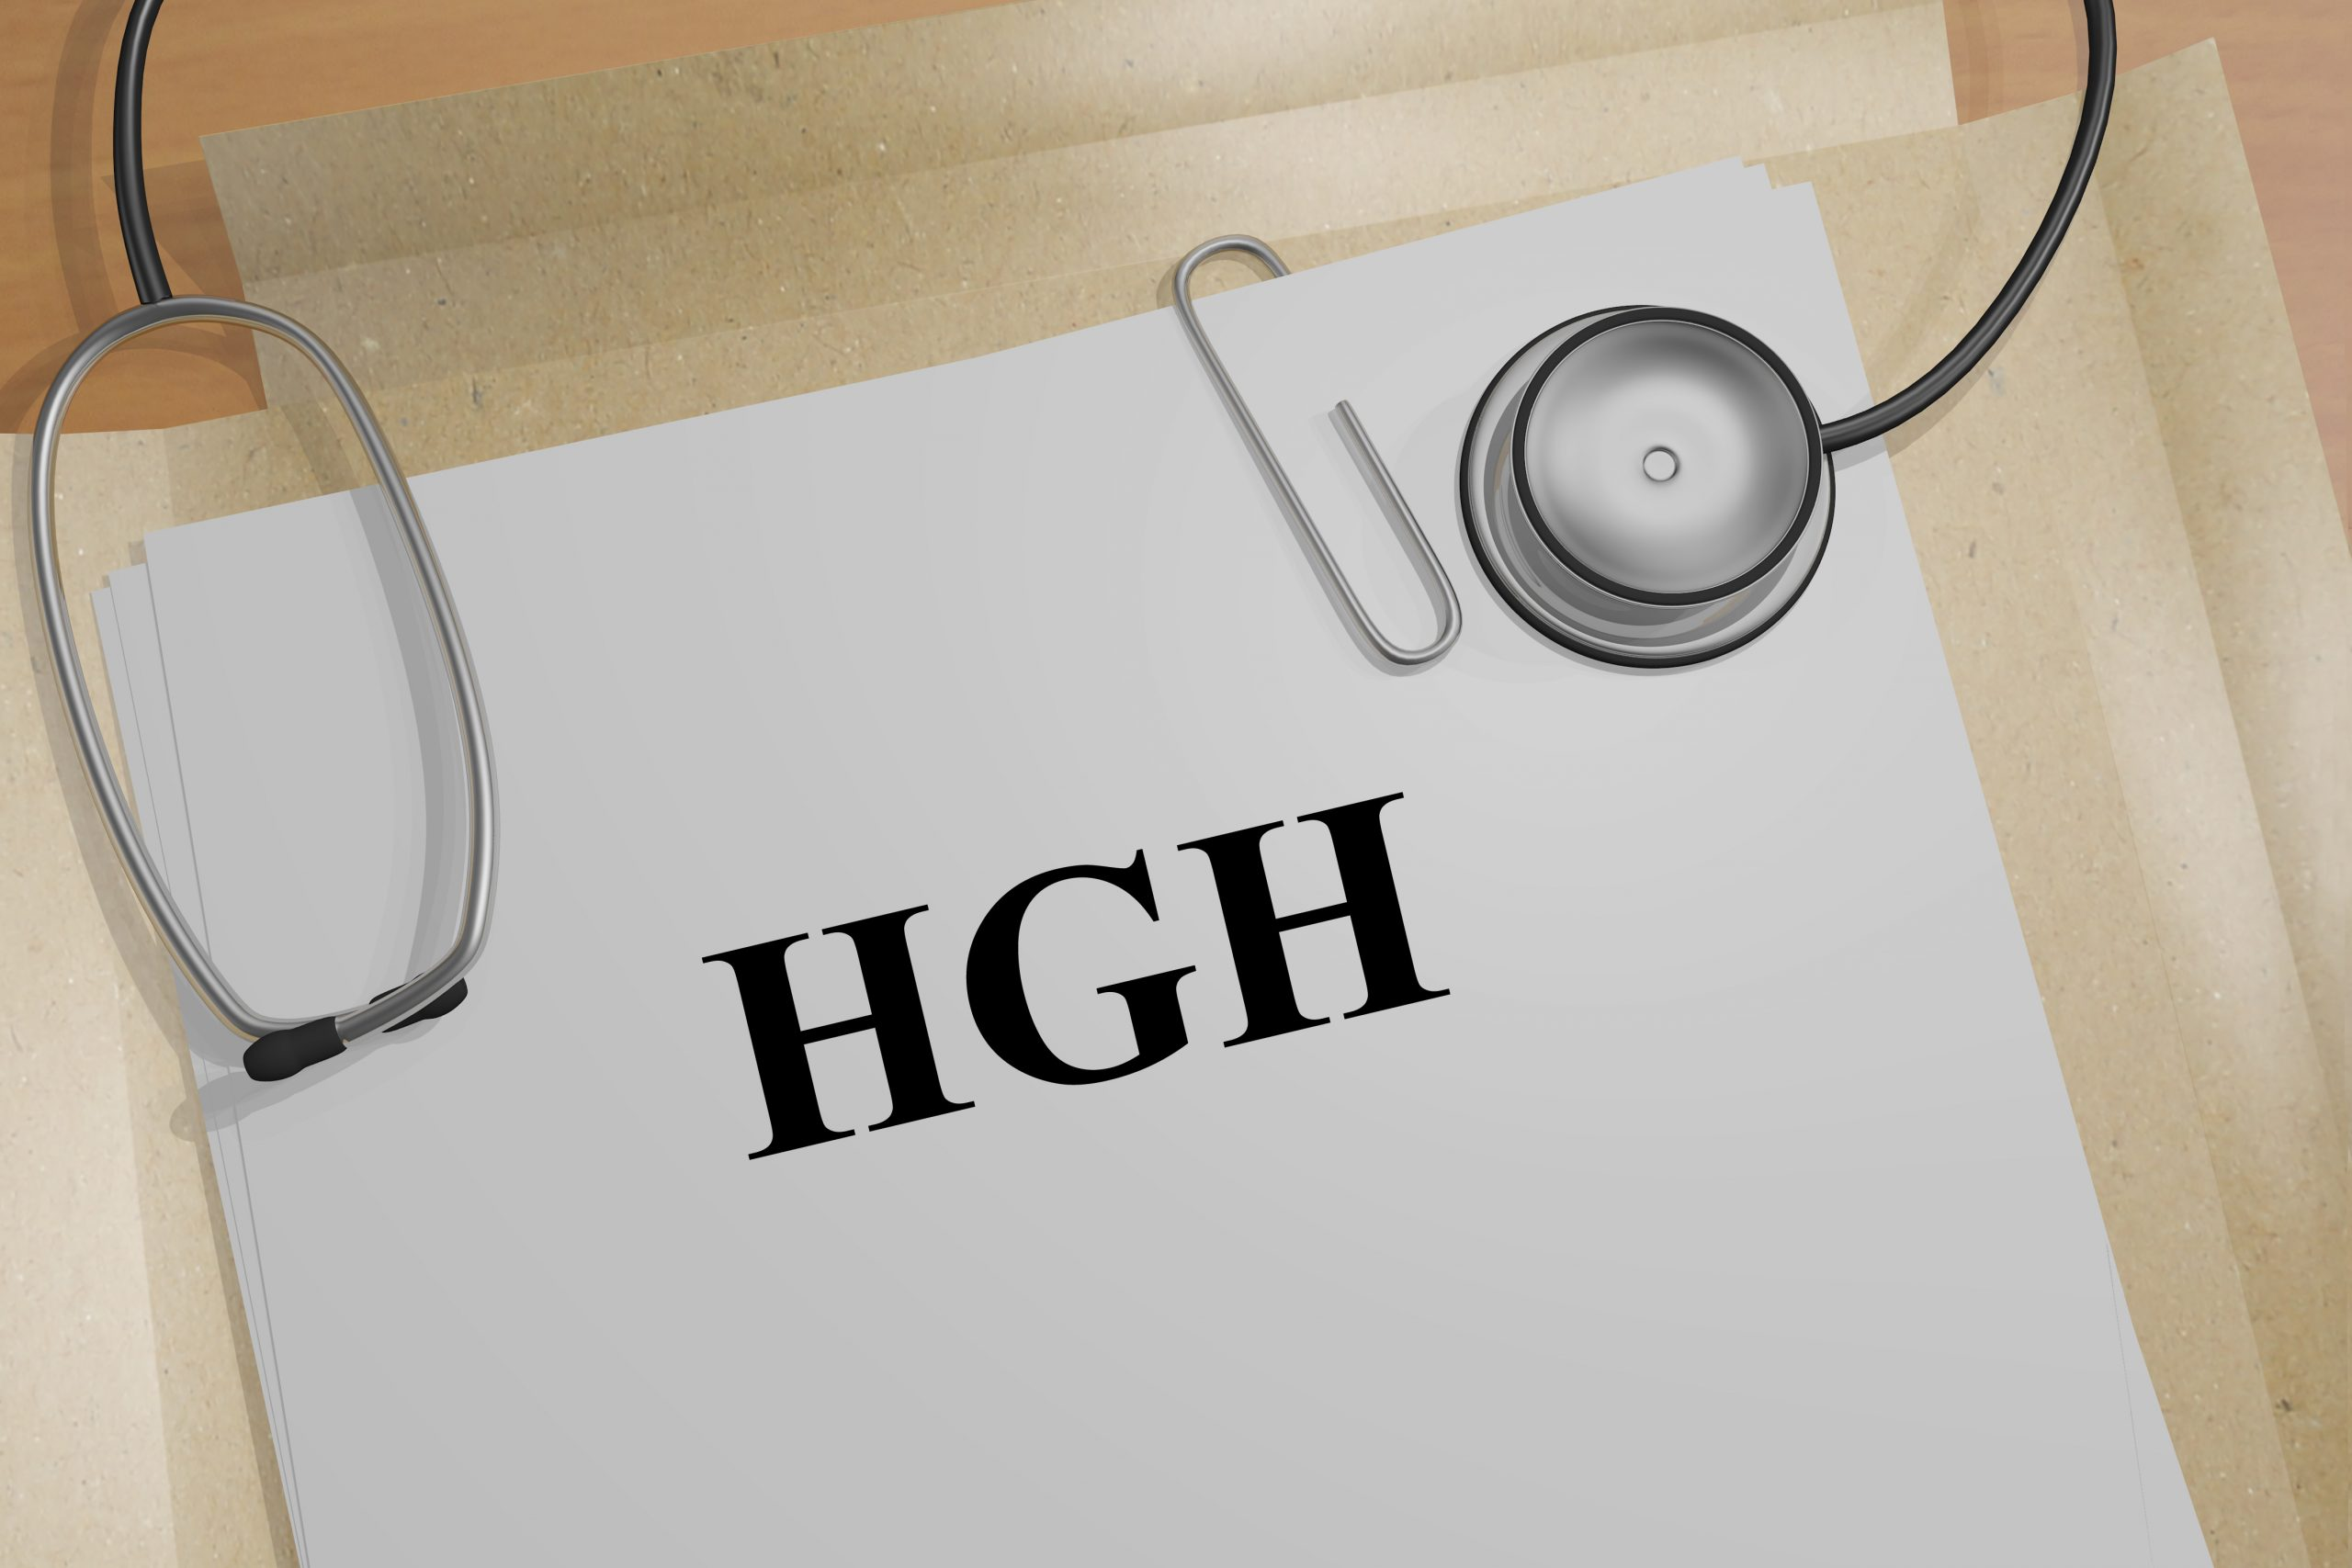 The Ultimate Guide on HGH and What To Watch Out For